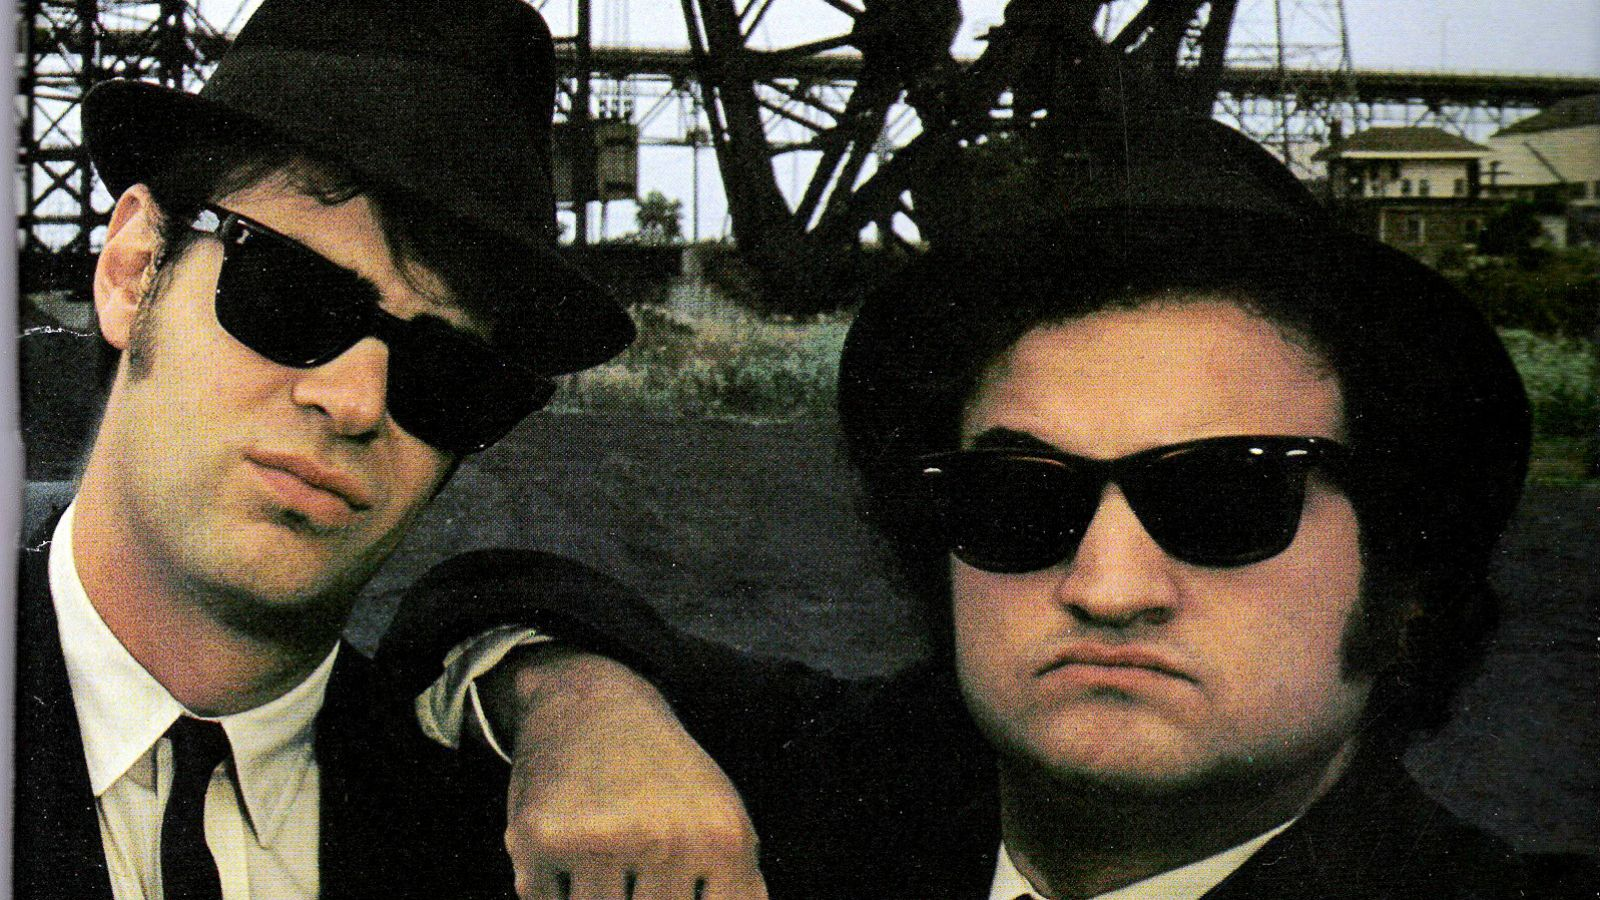 GTY_the_blues_brothers_02jef_150625_16x9_1600.jpg